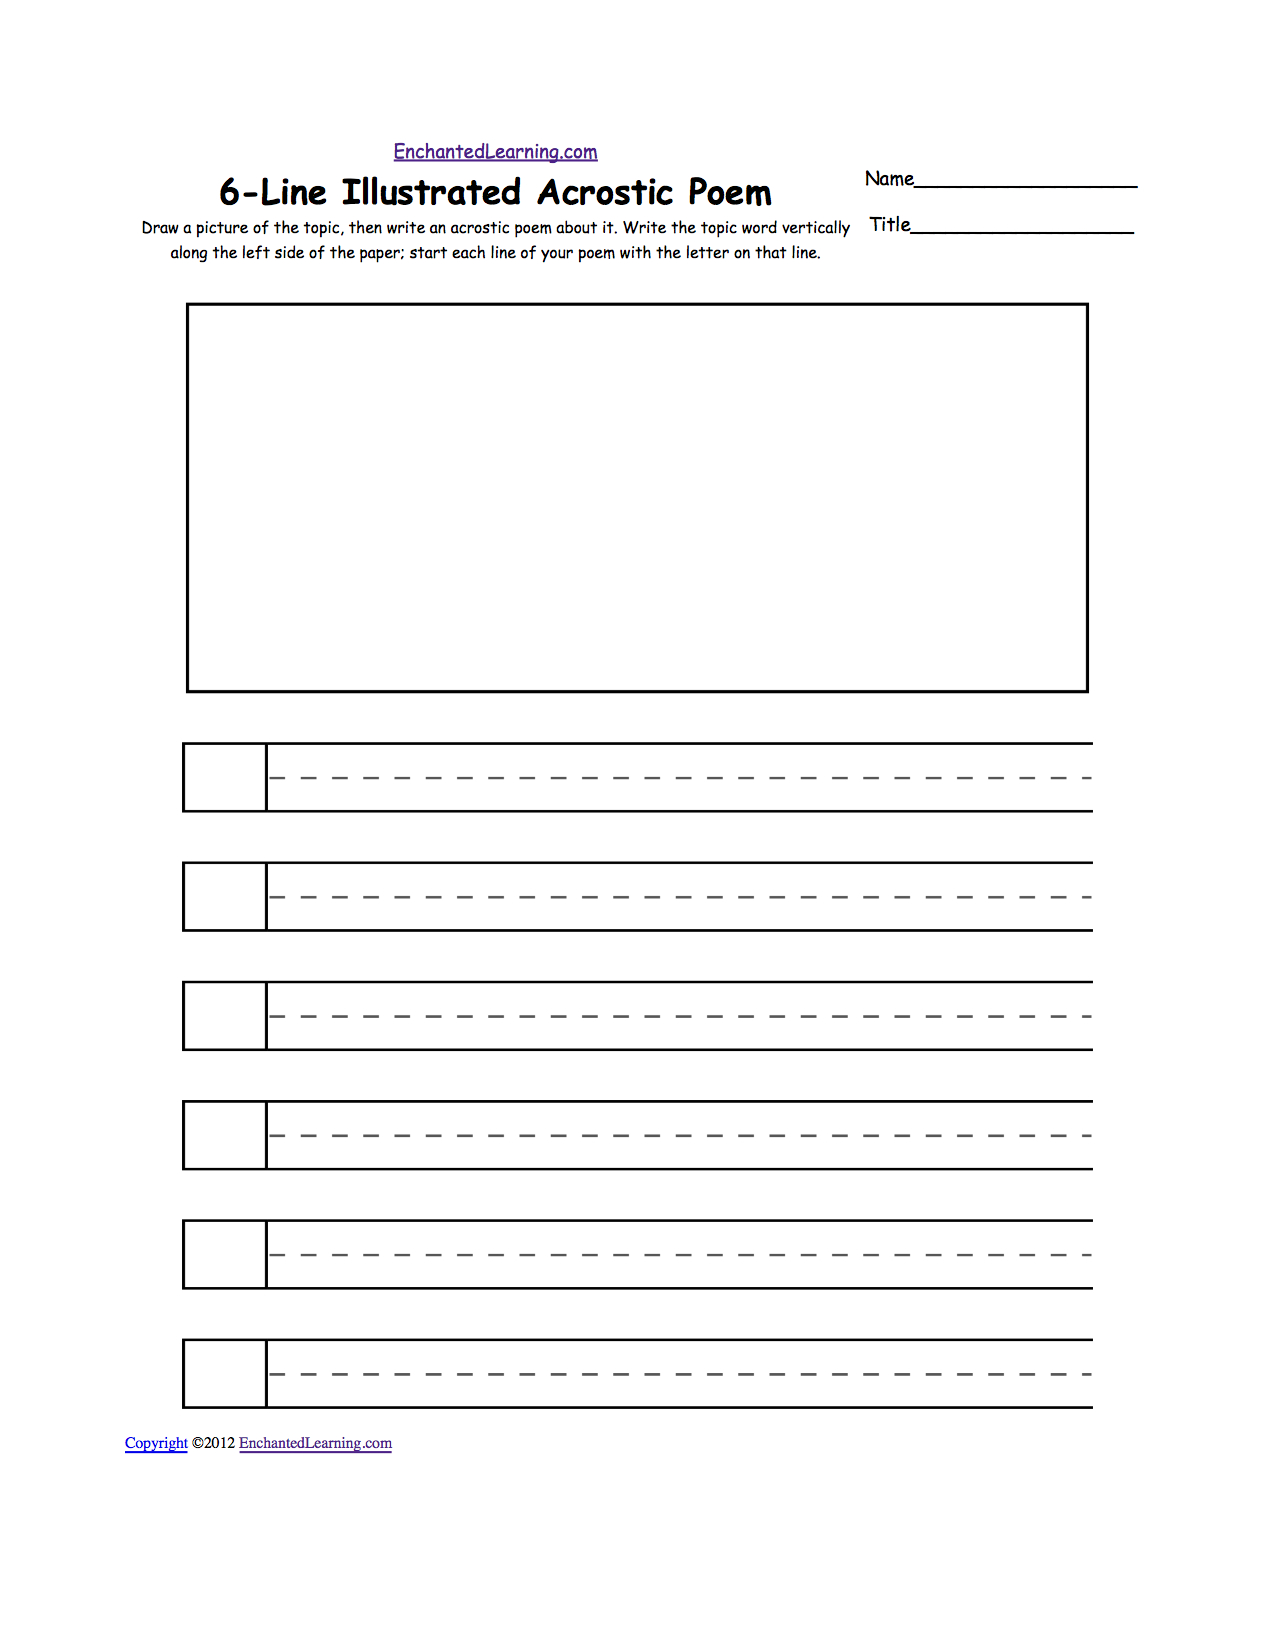 Blank Illustrated Acrostic Poem Worksheets (Handwriting Lines | Poetry Worksheets Printable